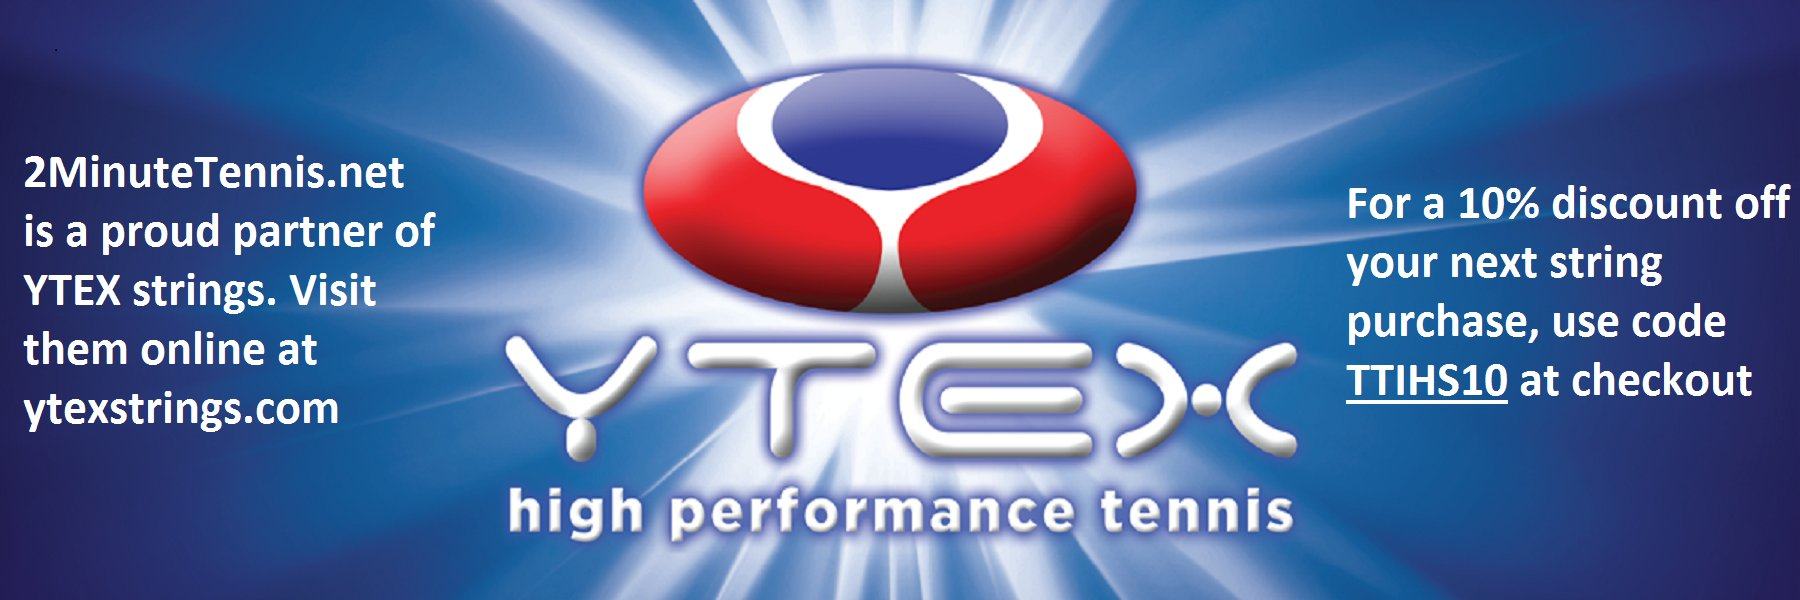 2MinuteTennis.net is a Proud Supporter of YTEX High Performance Tennis